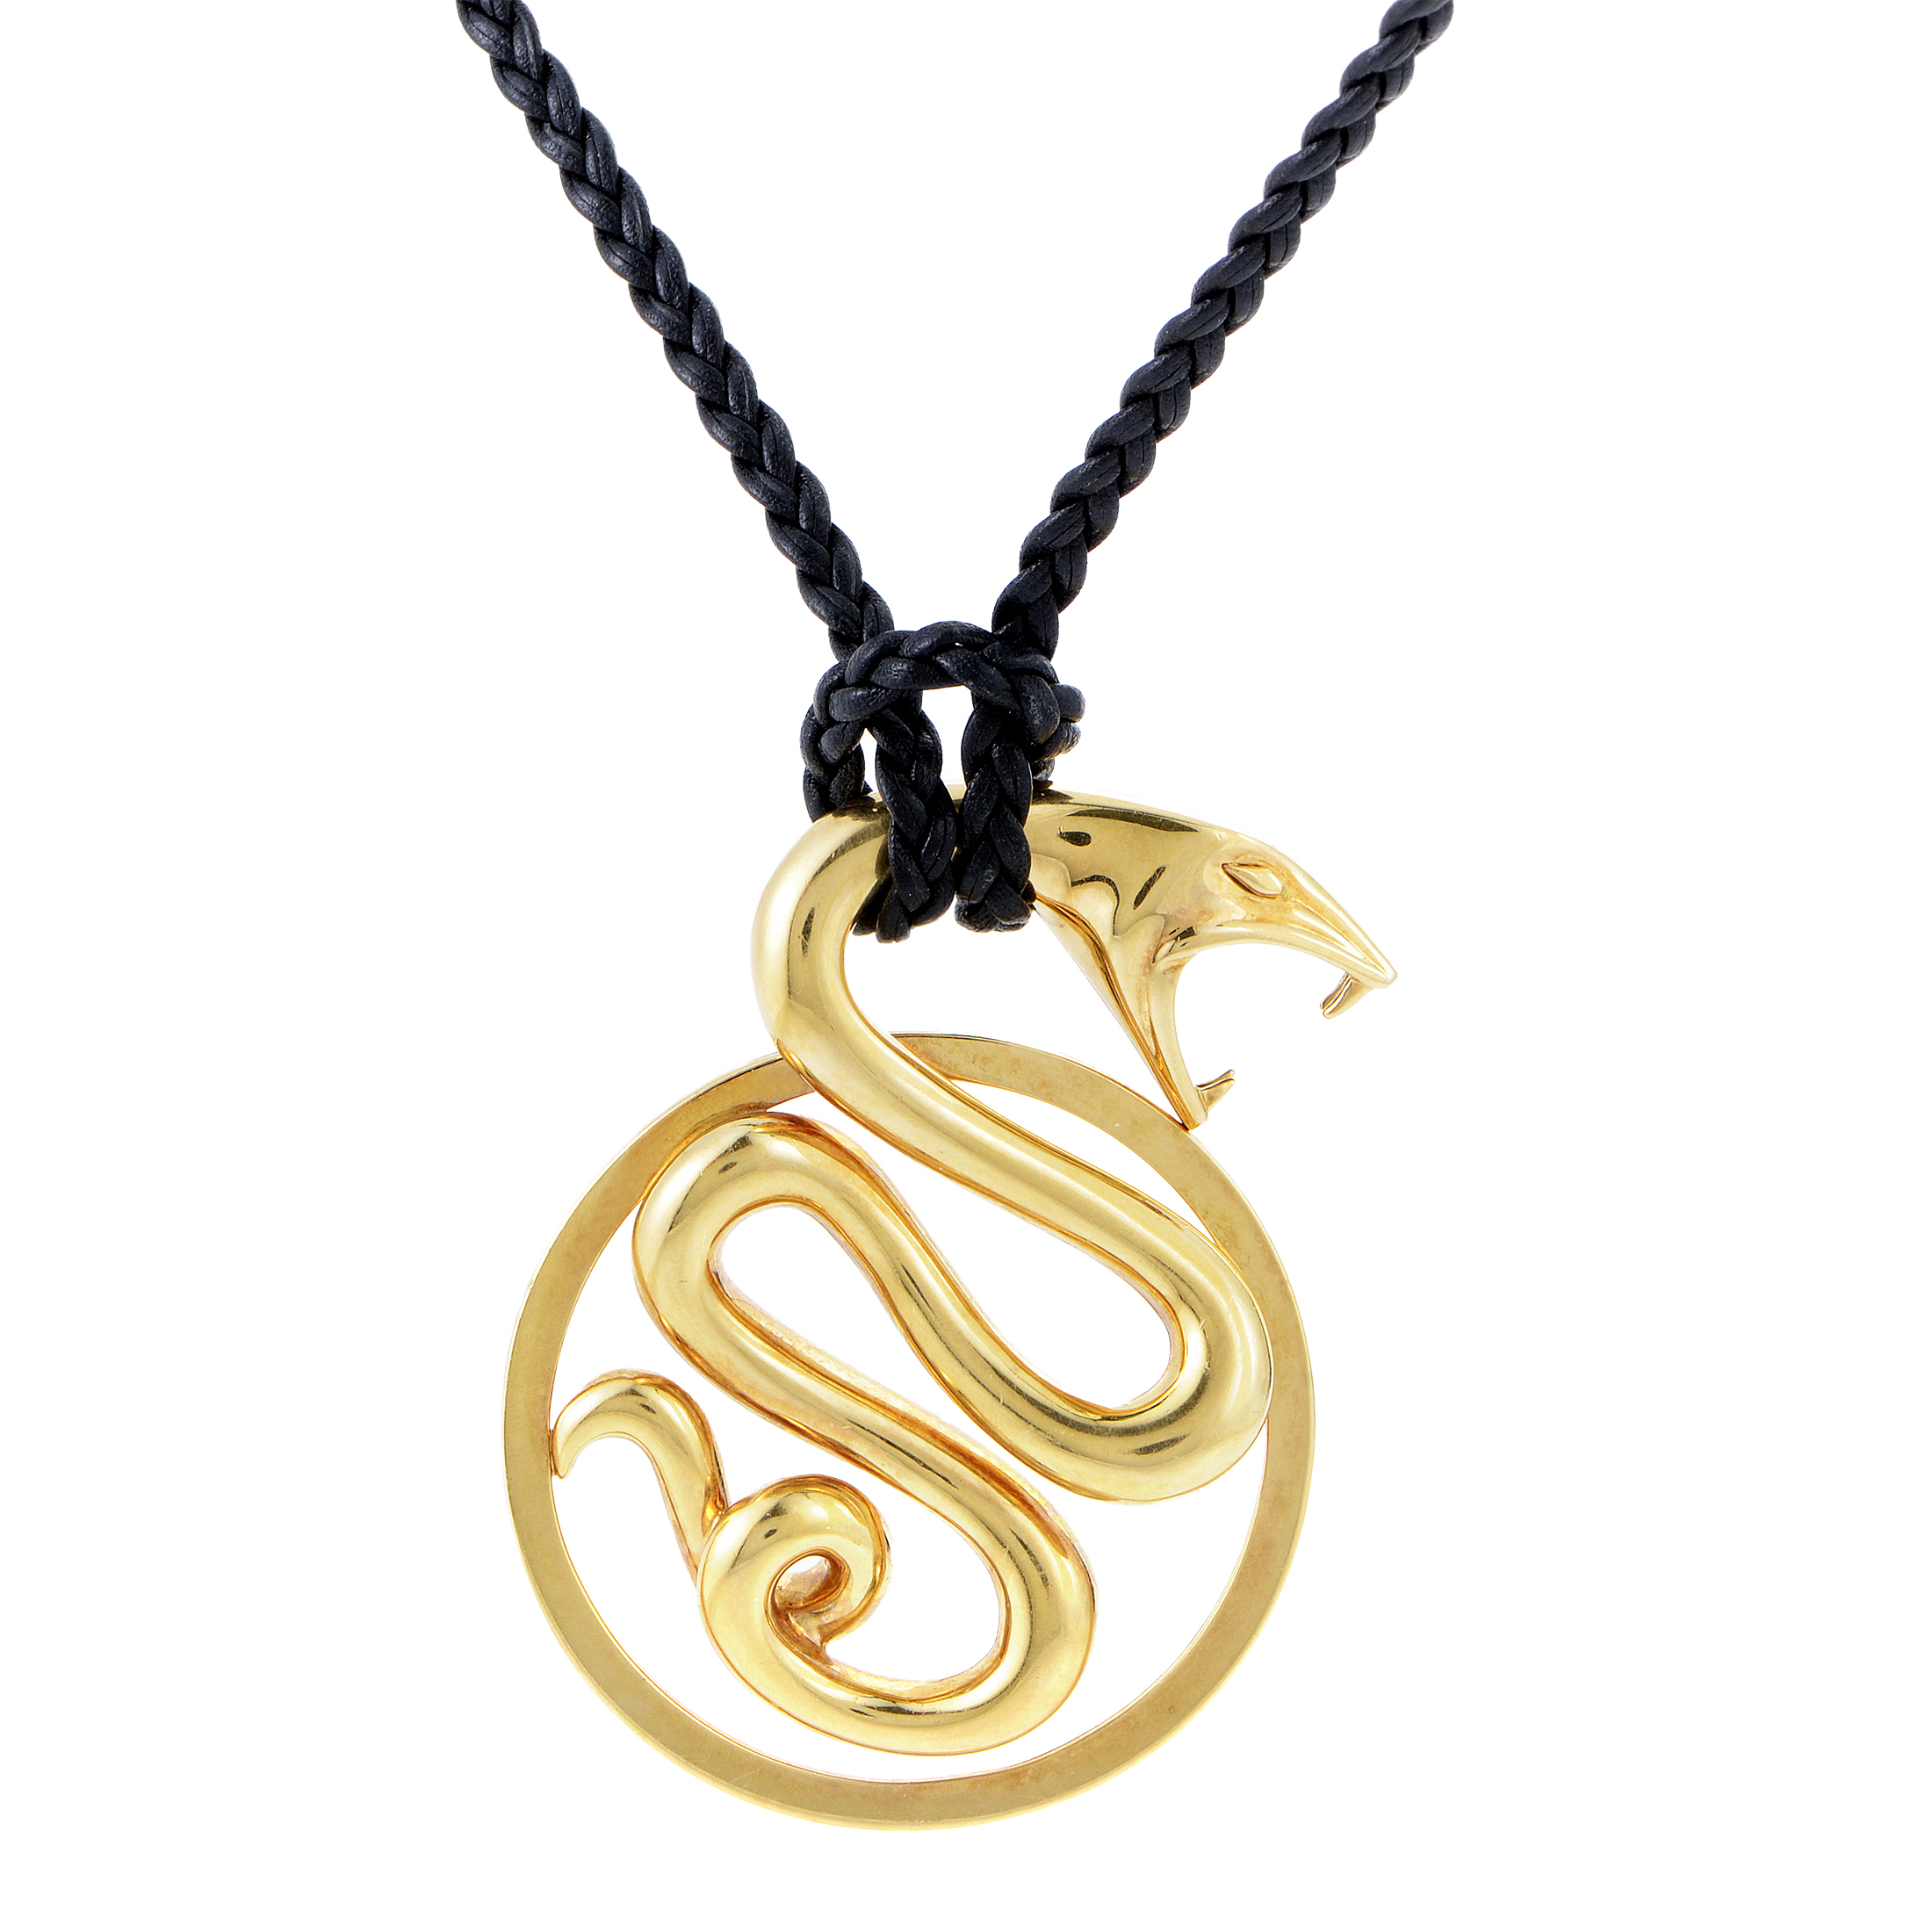 Boucheron 18K Yellow Gold Snake Pendant & Long Braided Cord Necklace